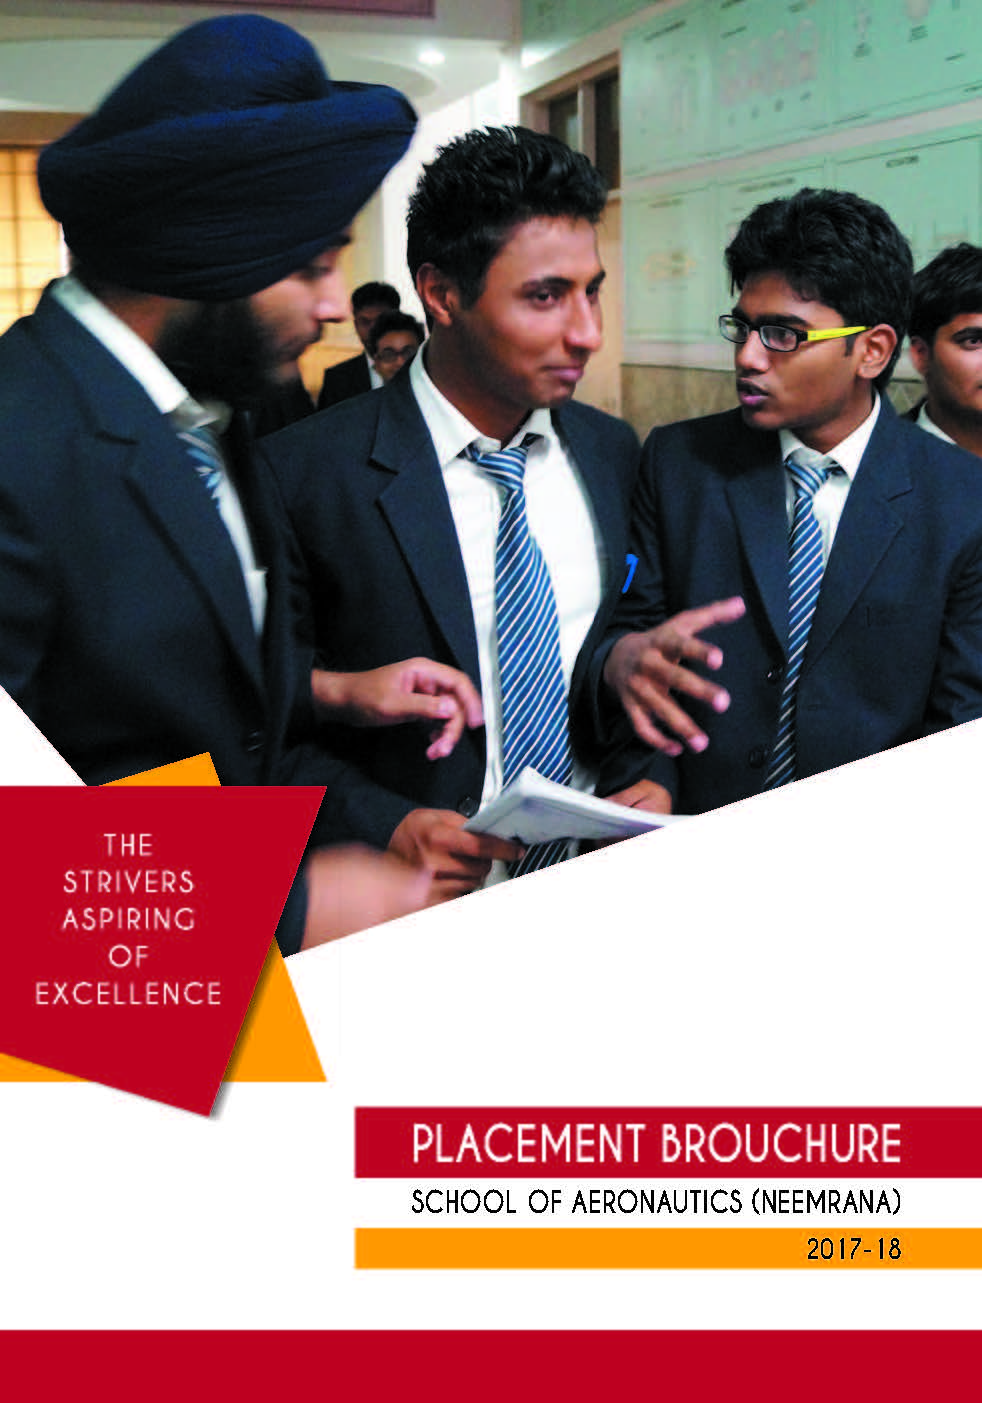 PLACEMENT BROCHURE